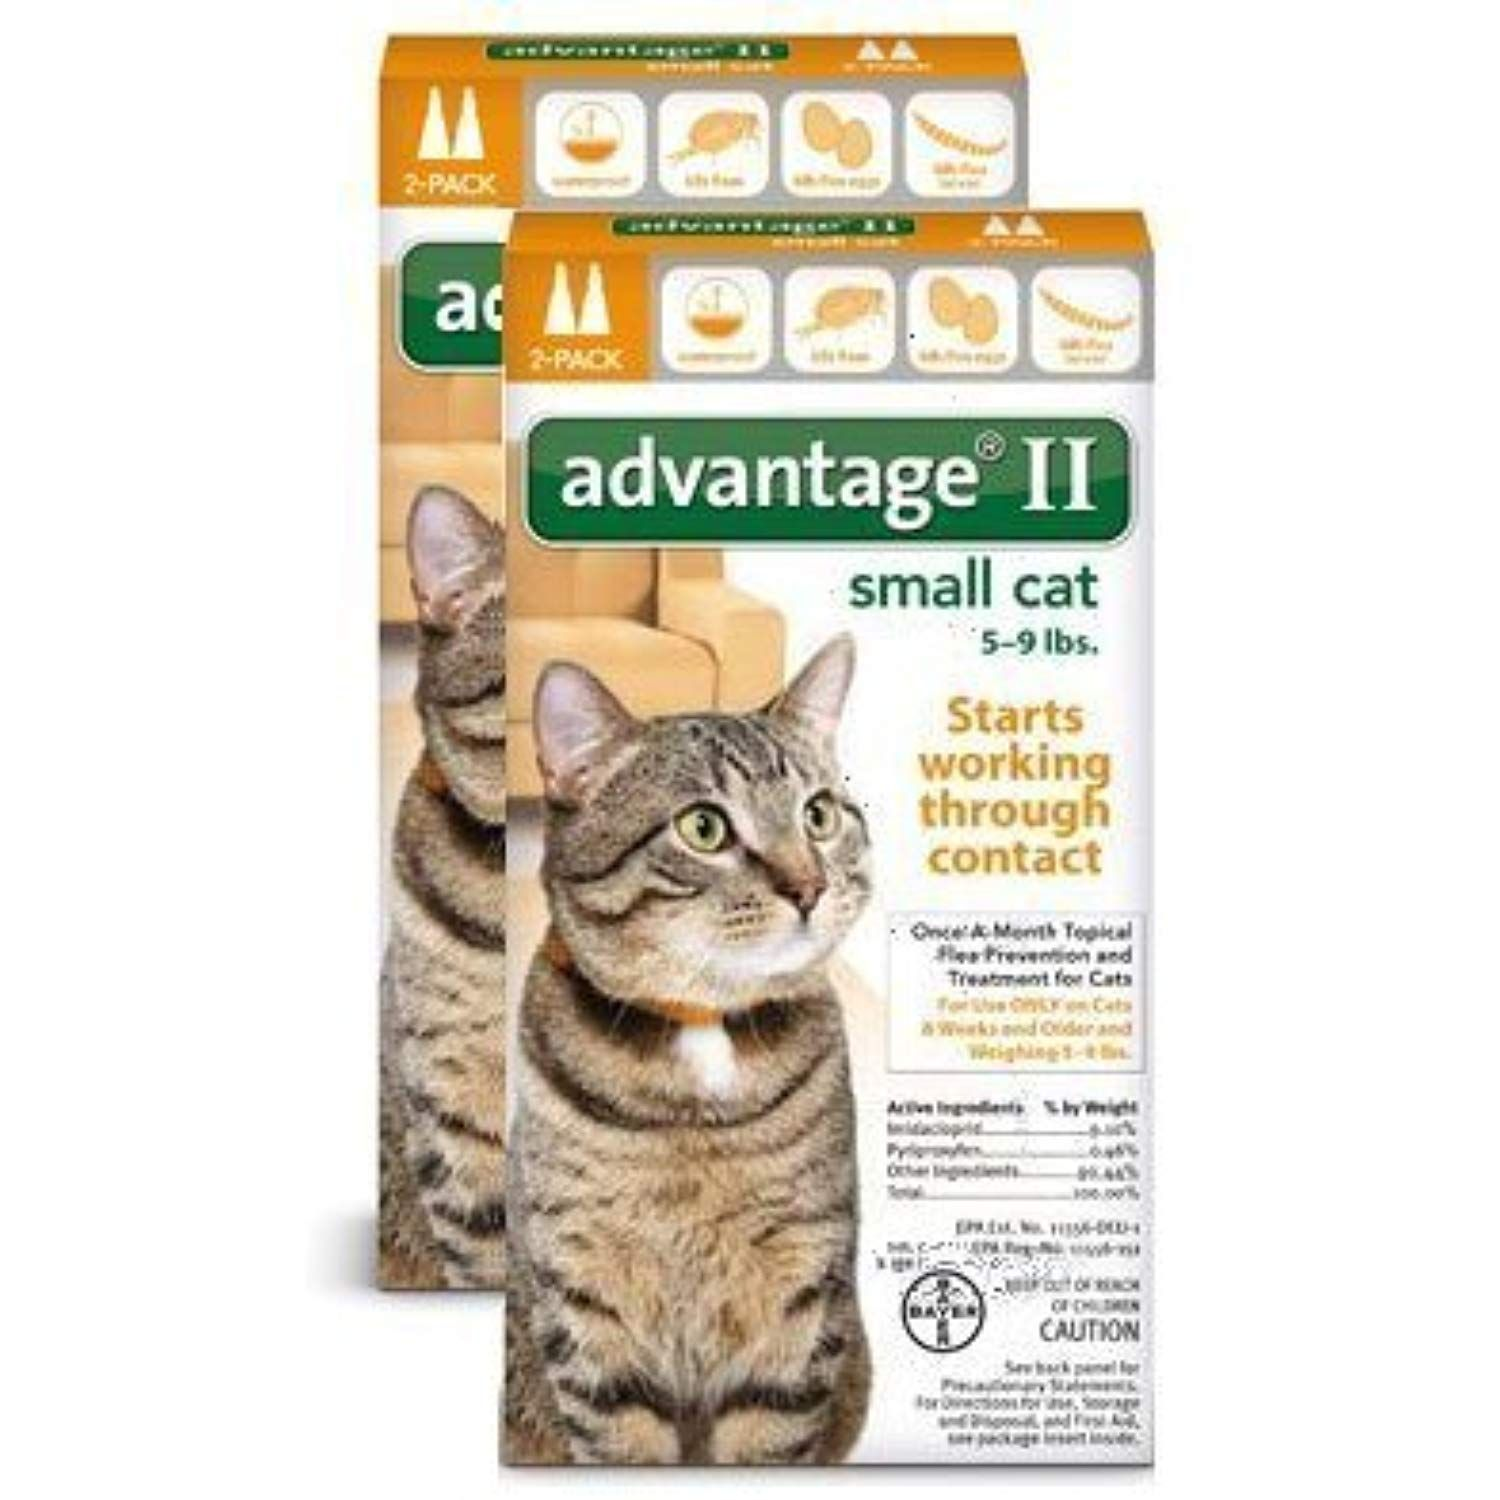 Bayer Advantage 2 Small Cat 2 Pack 5 9 Orange Pack Of 2 Click On The Image For Additional Details This Is A Small Cat Flea Medicine For Cats Cat Fleas